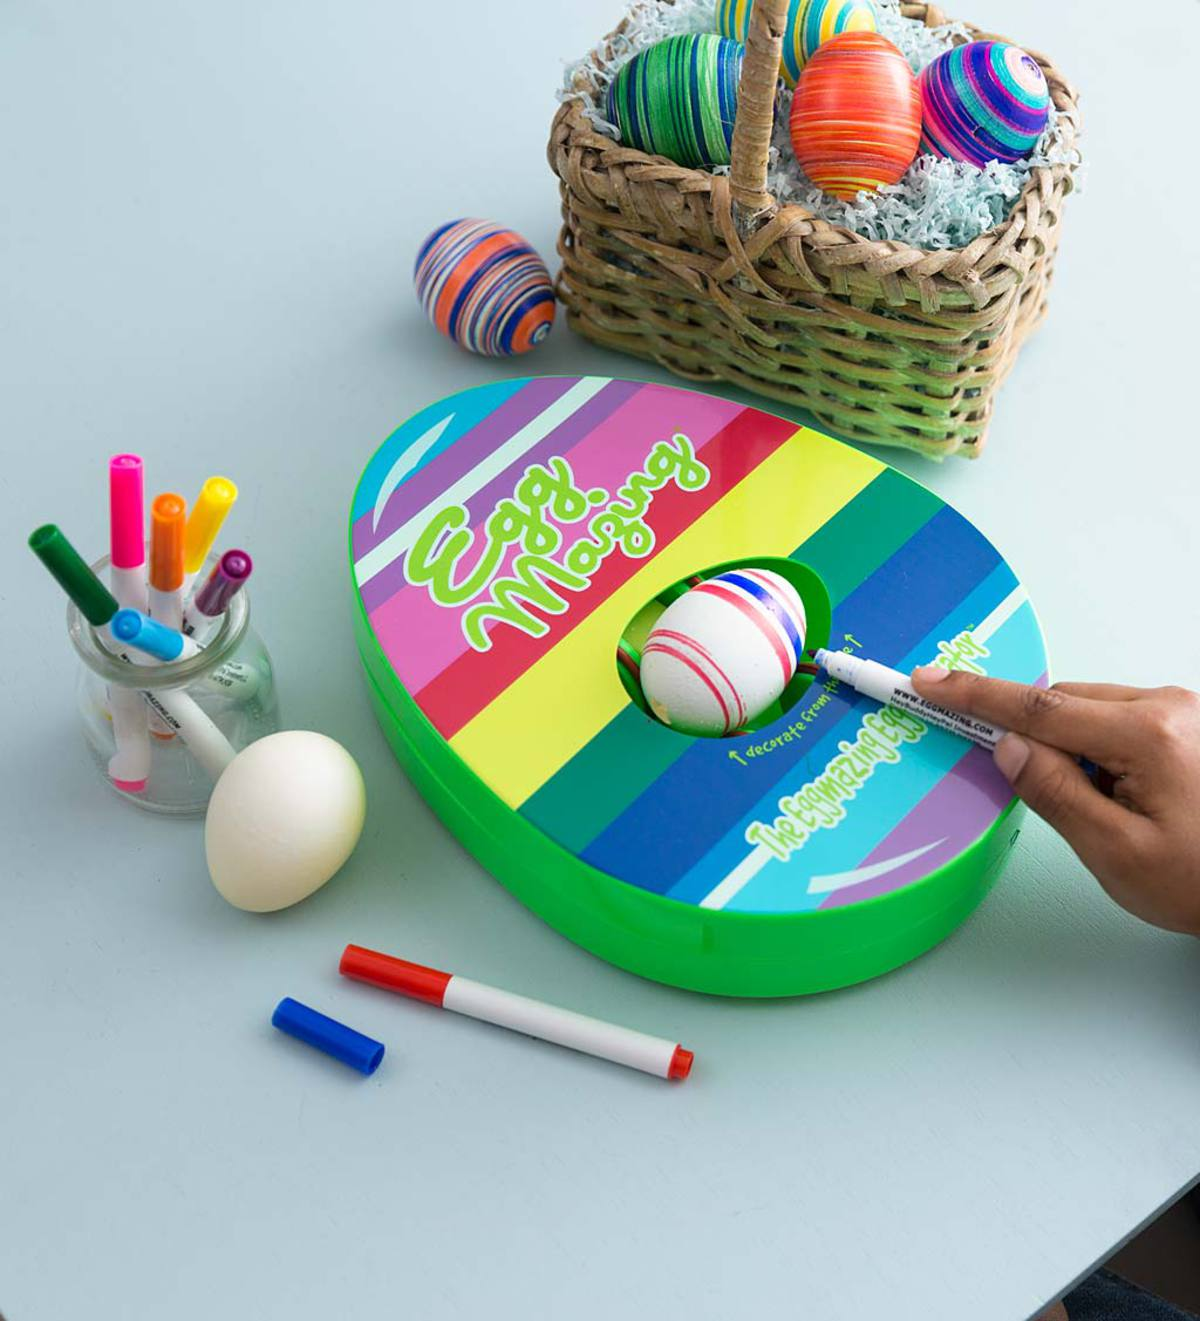 EggMazing Egg Lathe with Eight Food-Safe Markers